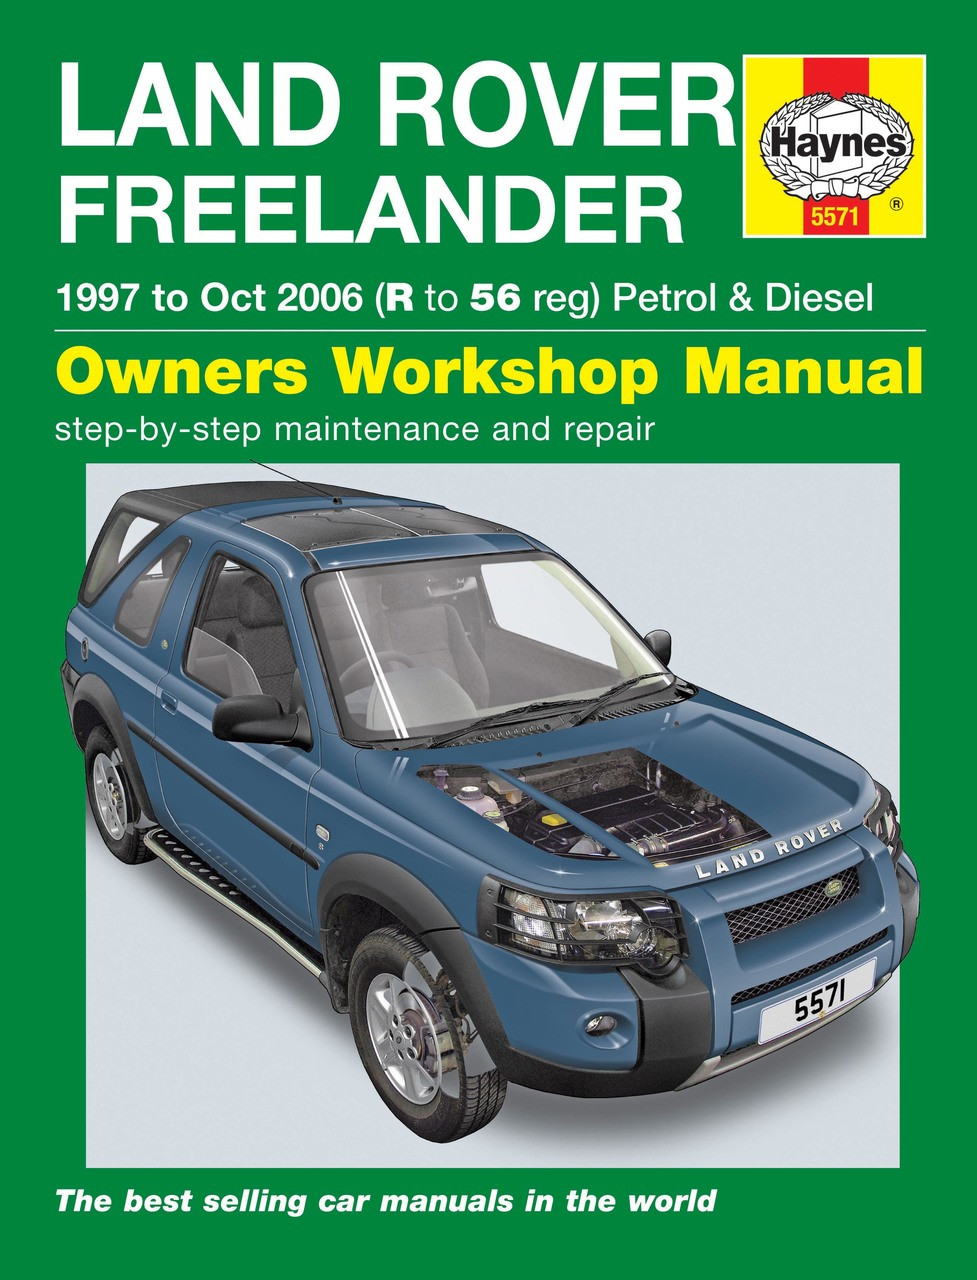 land rover freelander 1997 2006 workshop manual repair diagrams for 2004 land rover freelander engine transmission [ 977 x 1280 Pixel ]